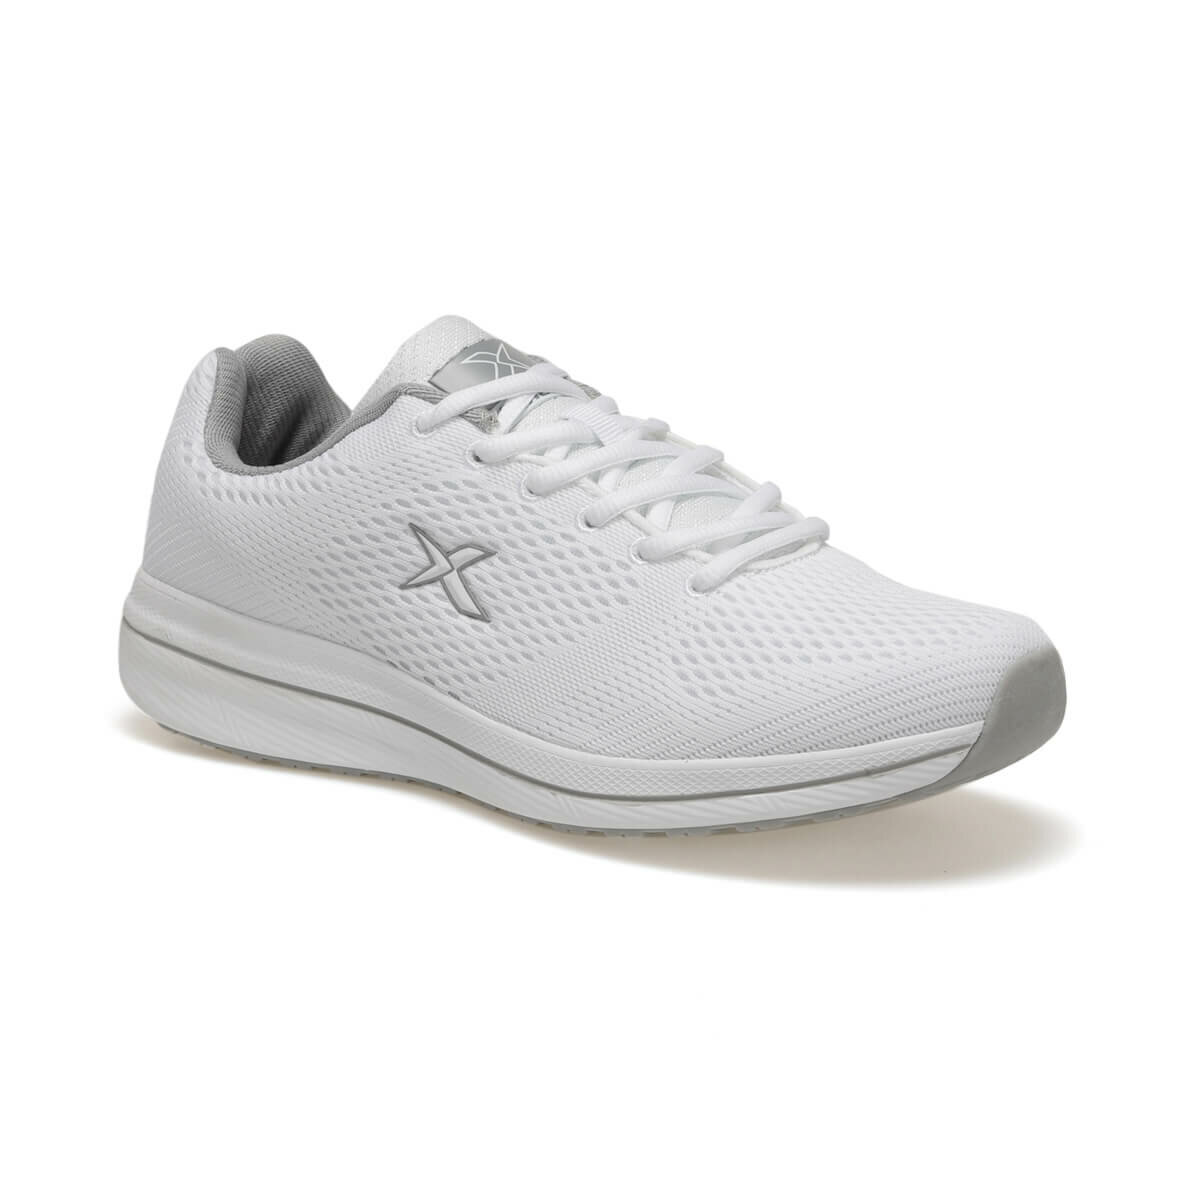 FLO ADELIO II White Male Walking Shoes KINETIX